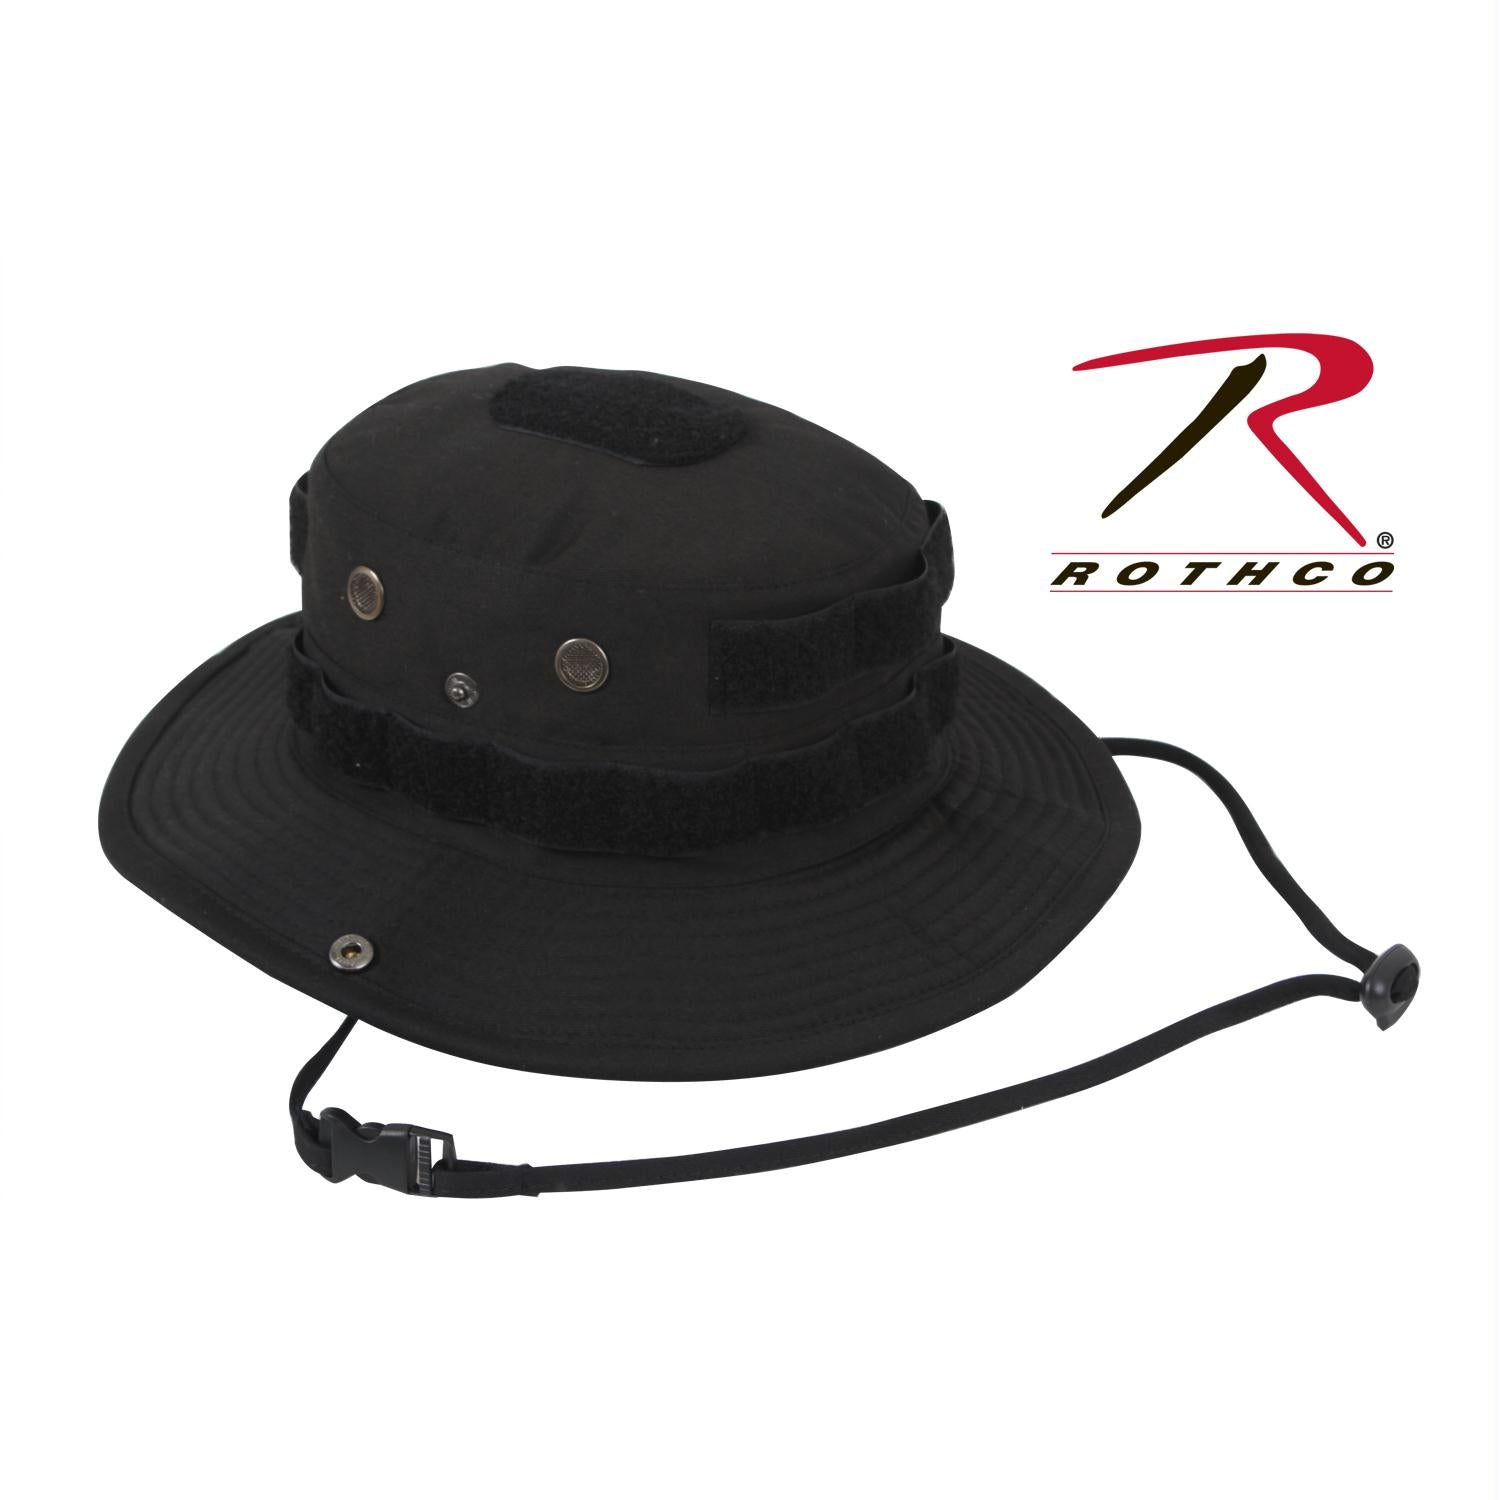 Rothco Tactical Boonie Hat - Black / 7 1/2